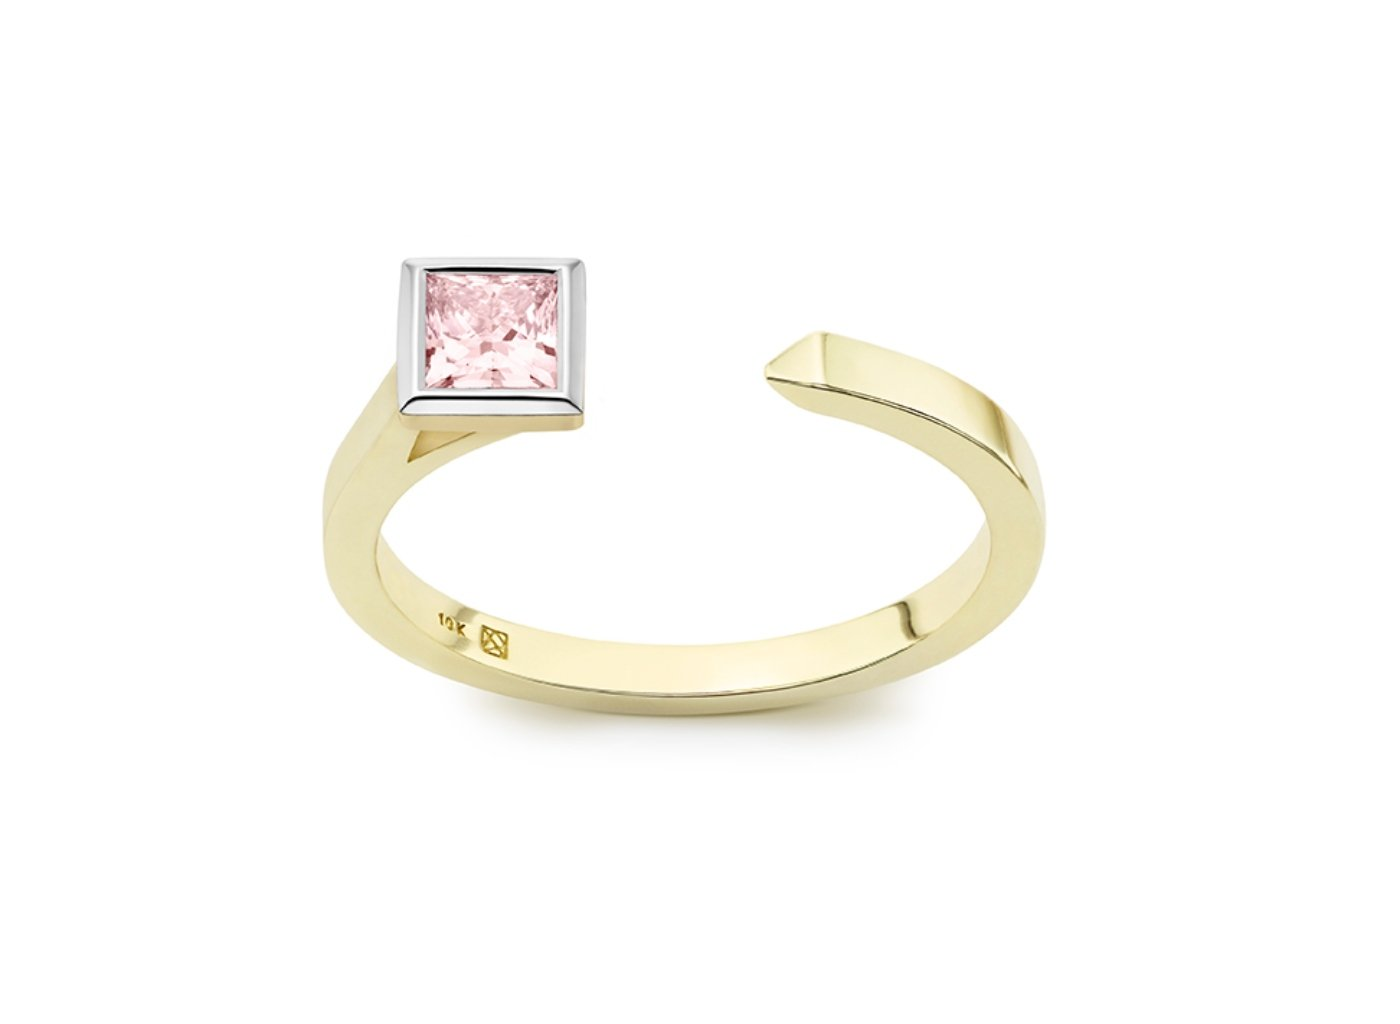 Front view of Princess open top 3/8 carat ring with pink diamond